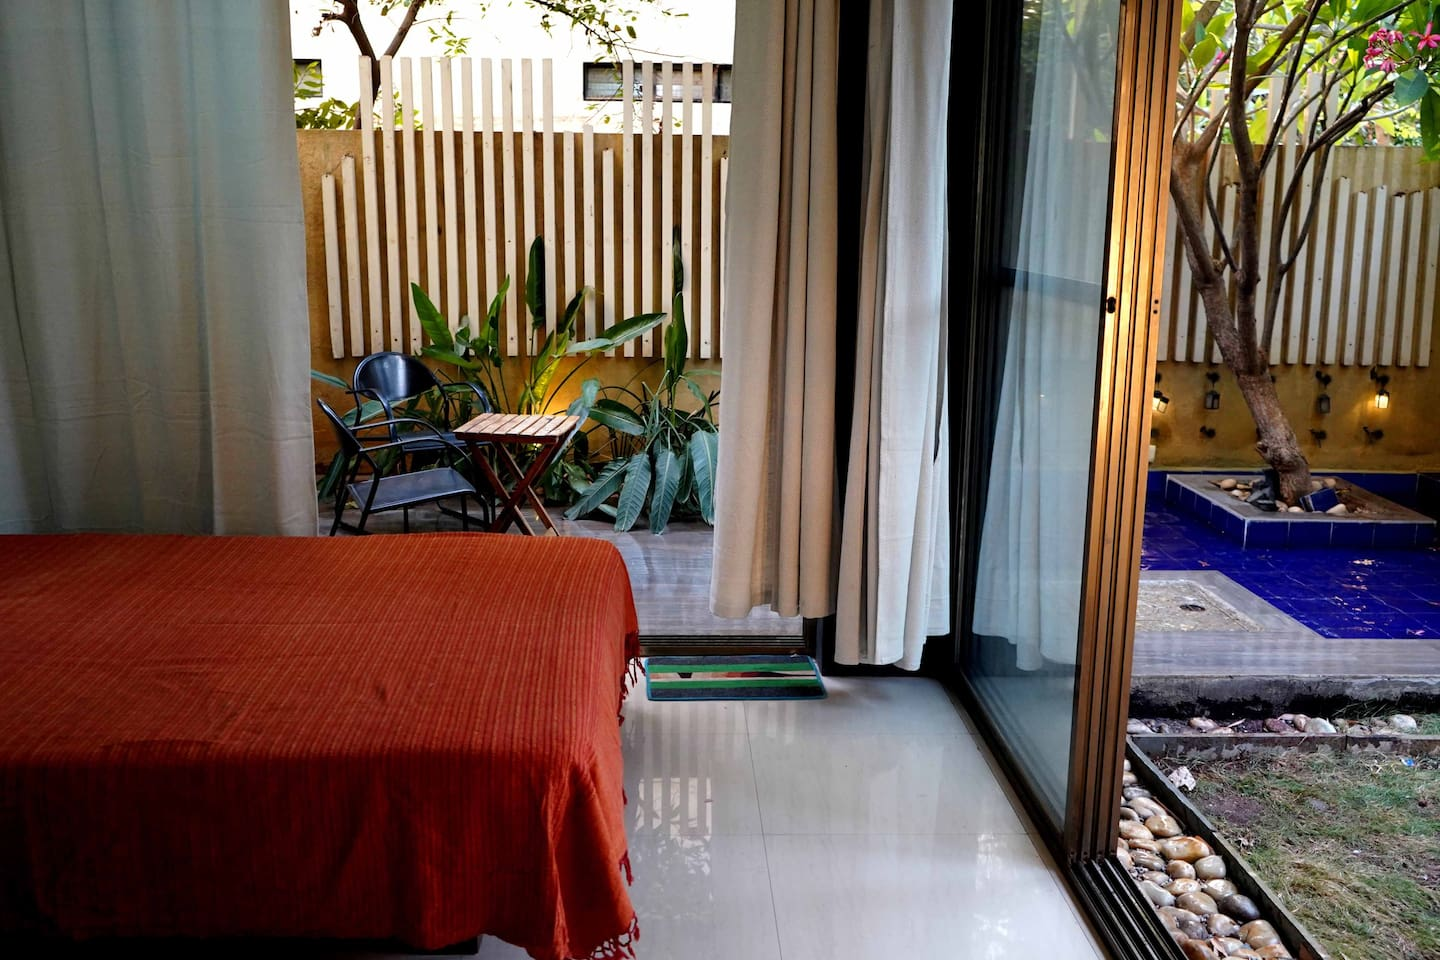 Room with a garden and pond. The room is a private space suited for a peaceful and comfortable stay. Also good for working professionals. It's the apt place to unwind after a day of touristy activities. Or one can spend an entire rainy day here too!